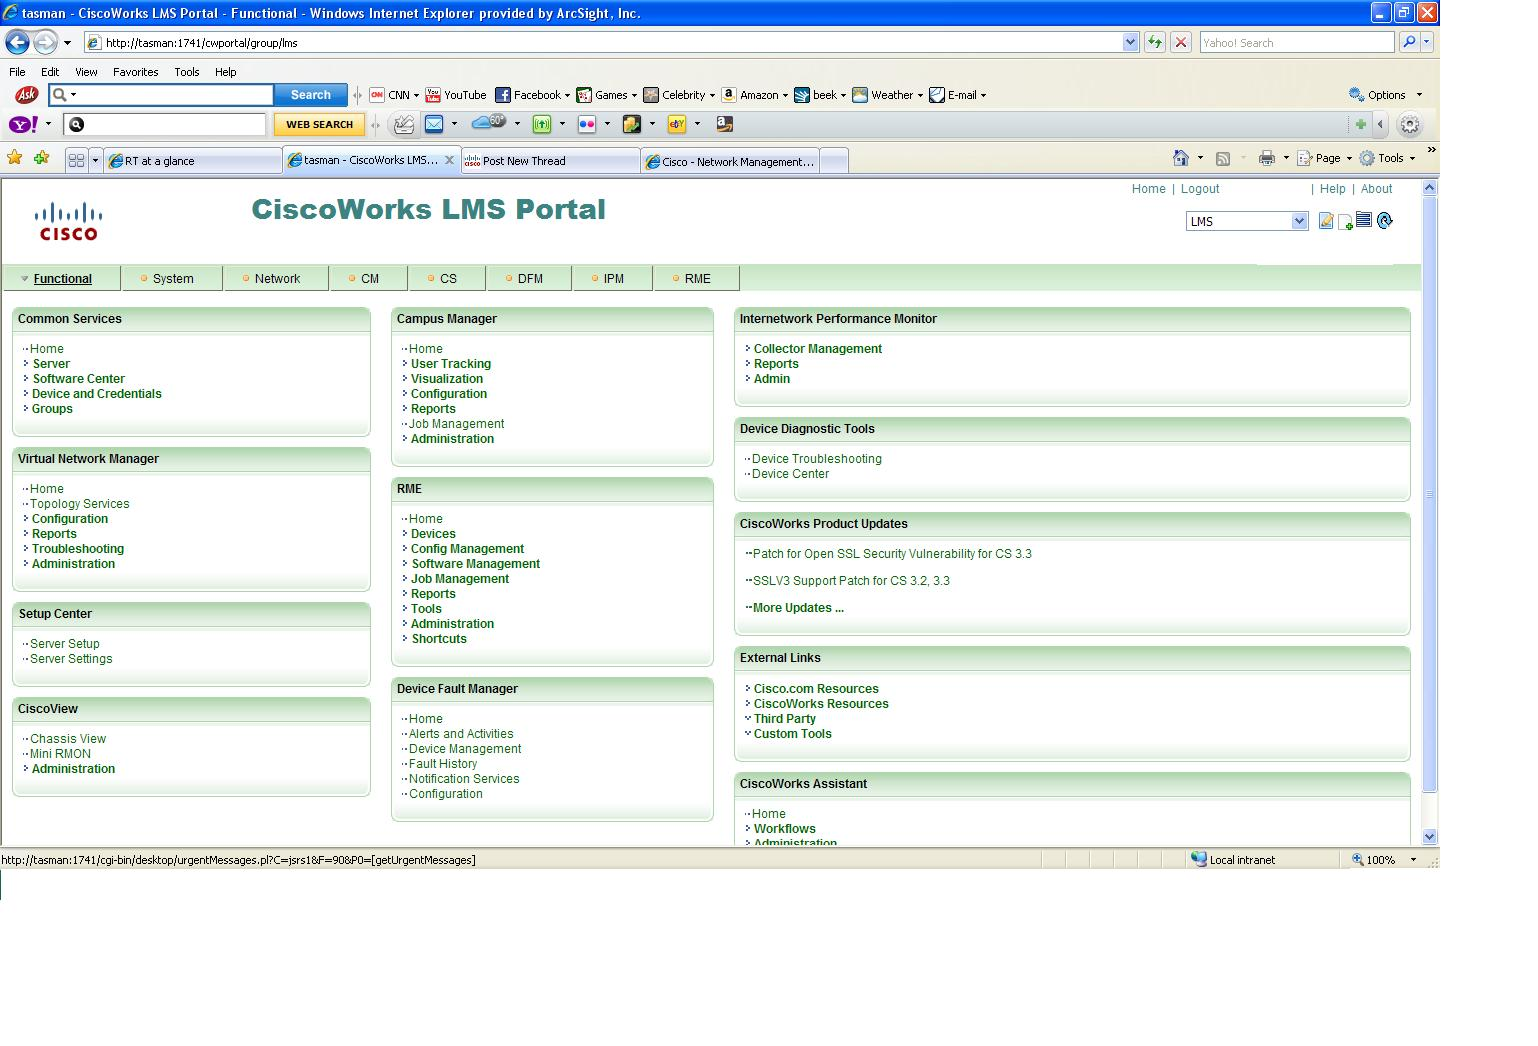 CiscoWorks Cuts Out Work